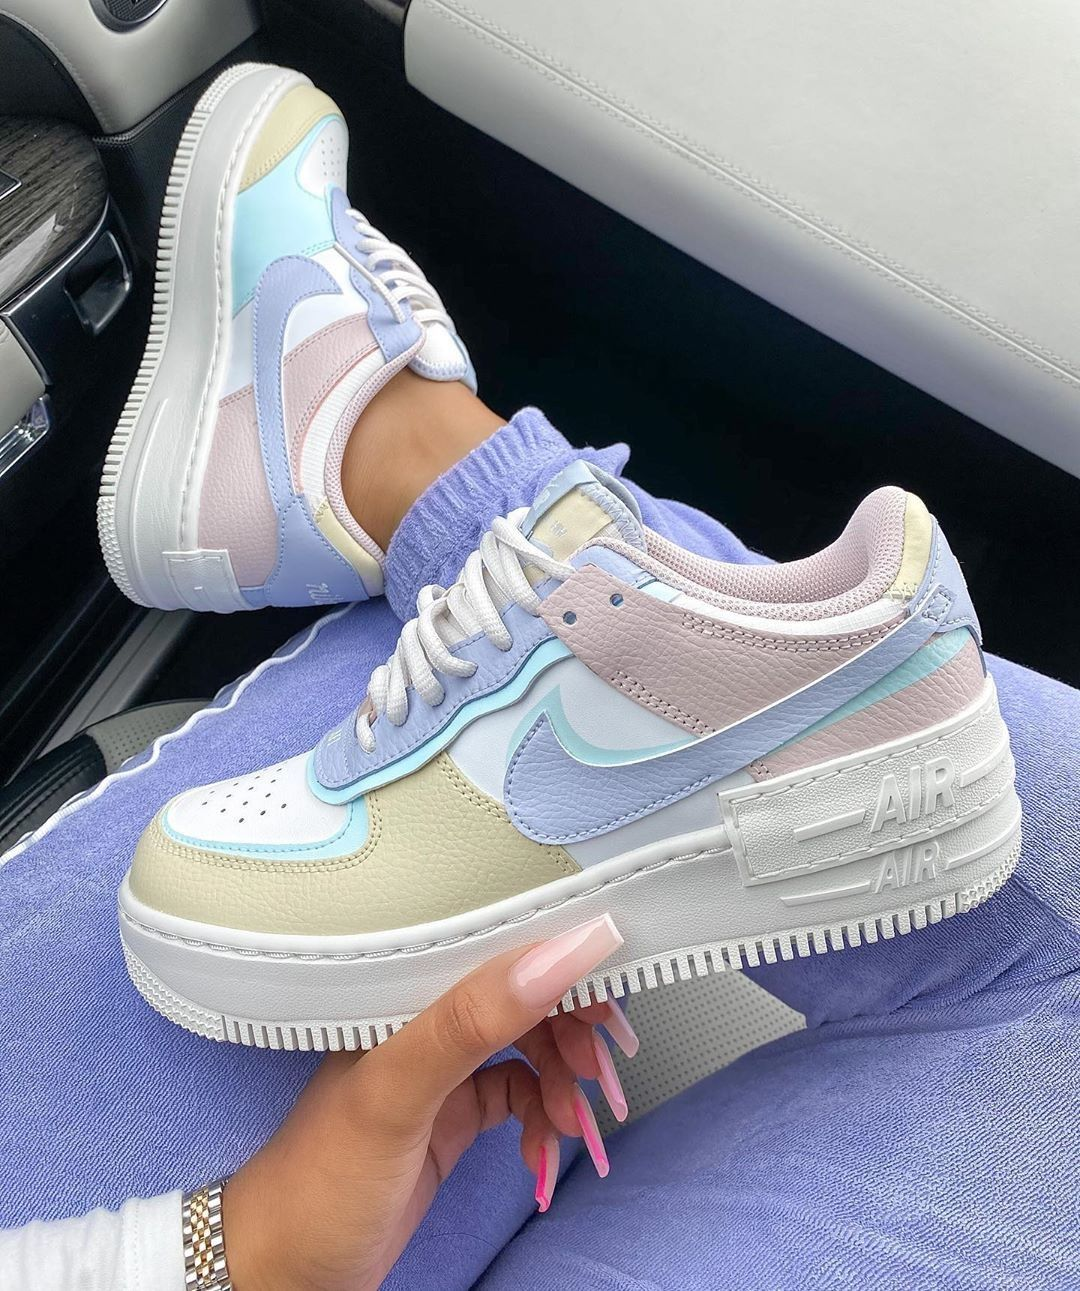 Restock Alert This Nike Air Force 1 Shadow Pastel Has Just Restocked At Nike With Limited Sizes And Selling Su In 2020 Nike Shoes Jordans Cute Sneakers Nike Air Shoes Follow to keep up with nike's hottest new kicks 🔥 follow us @airforce1nike and tag us to get featured 👀. this nike air force 1 shadow pastel has